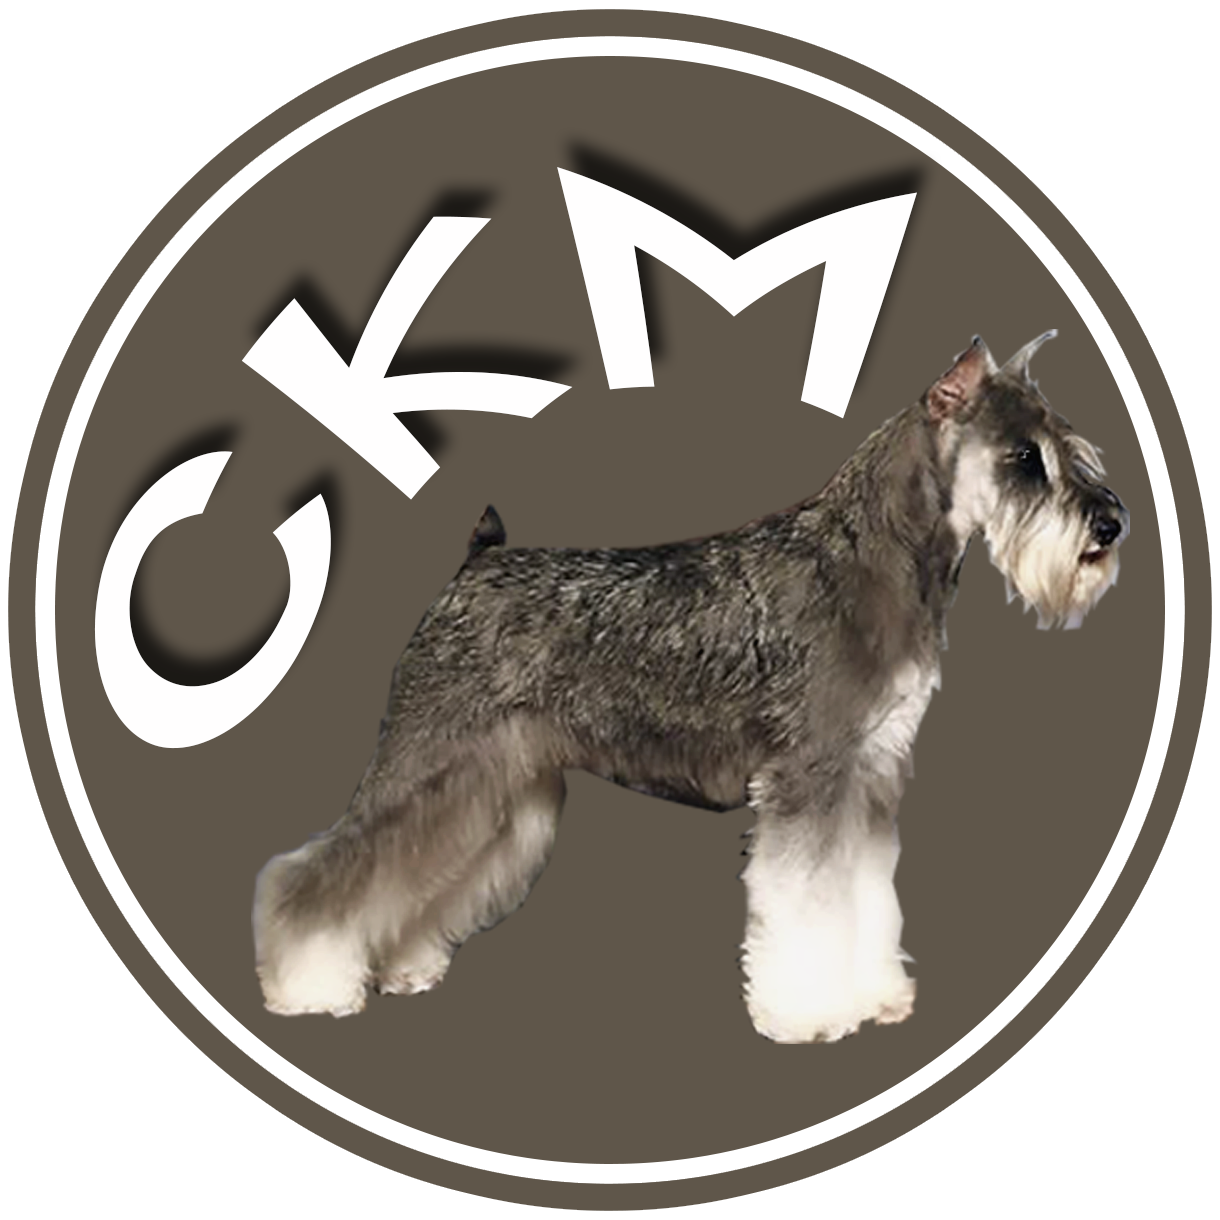 Miniature Schnauzer Puppies For Sale In East Texas Miniature Schnauzer Puppies Schnauzer Puppy Puppies For Sale